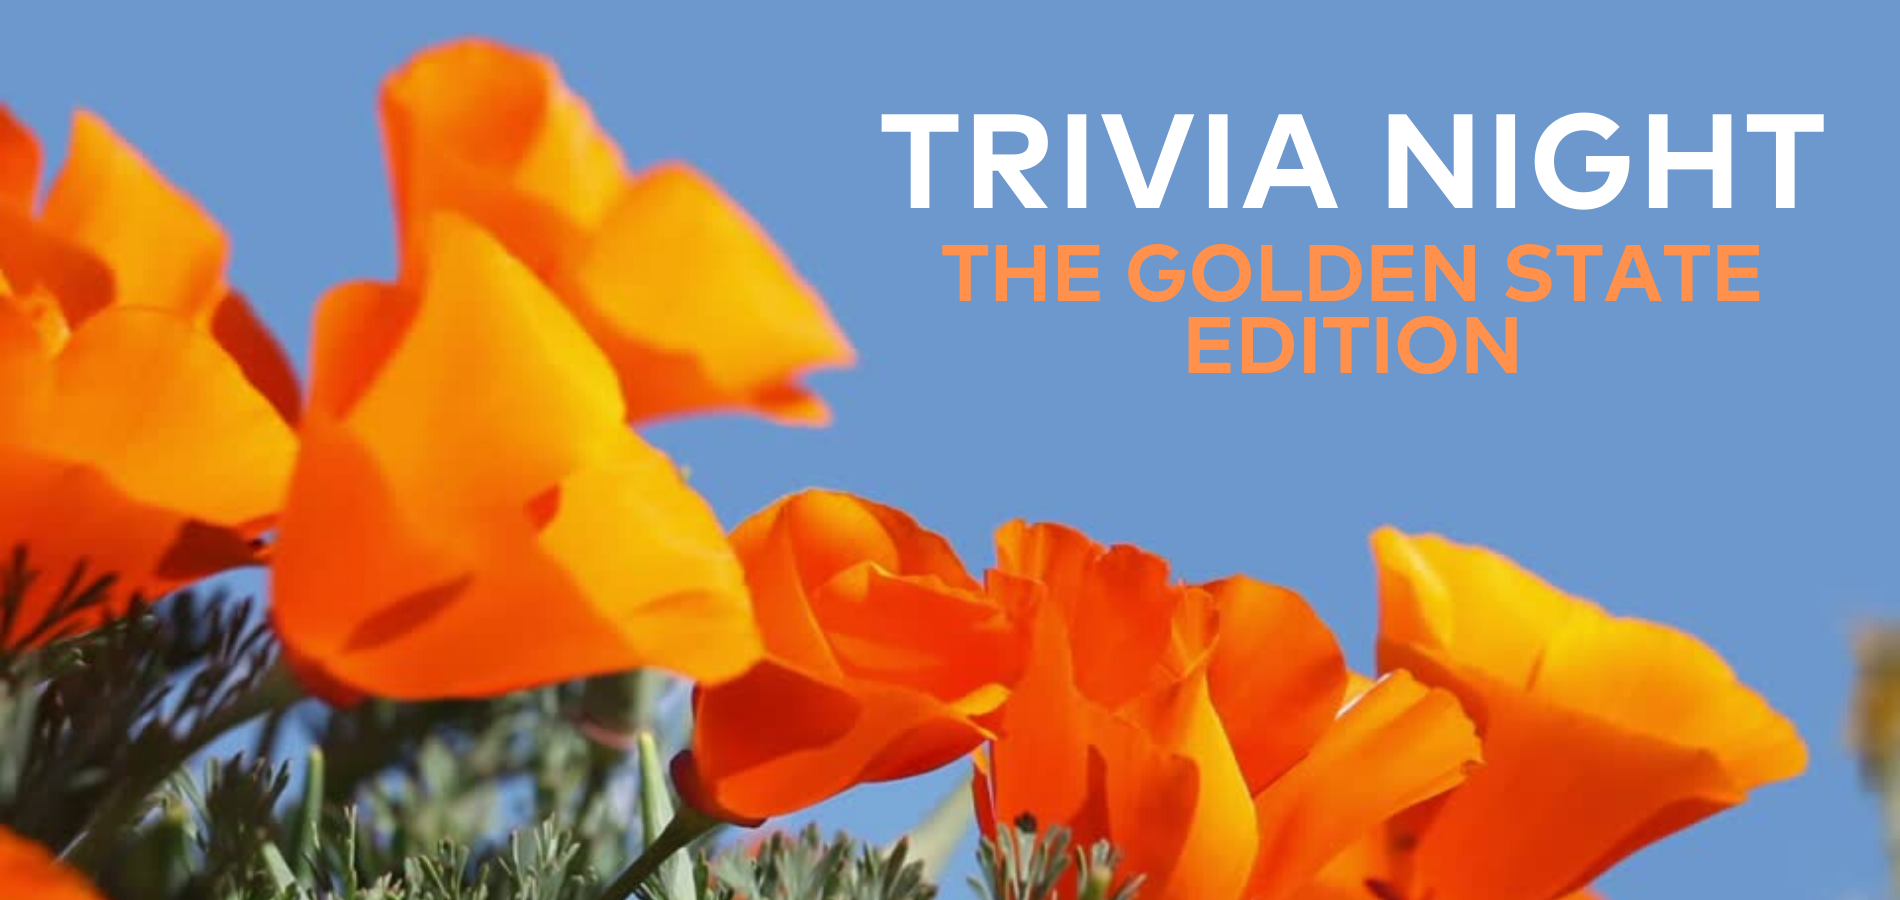 POSTPONED! Trivia Night: The Golden State Edition